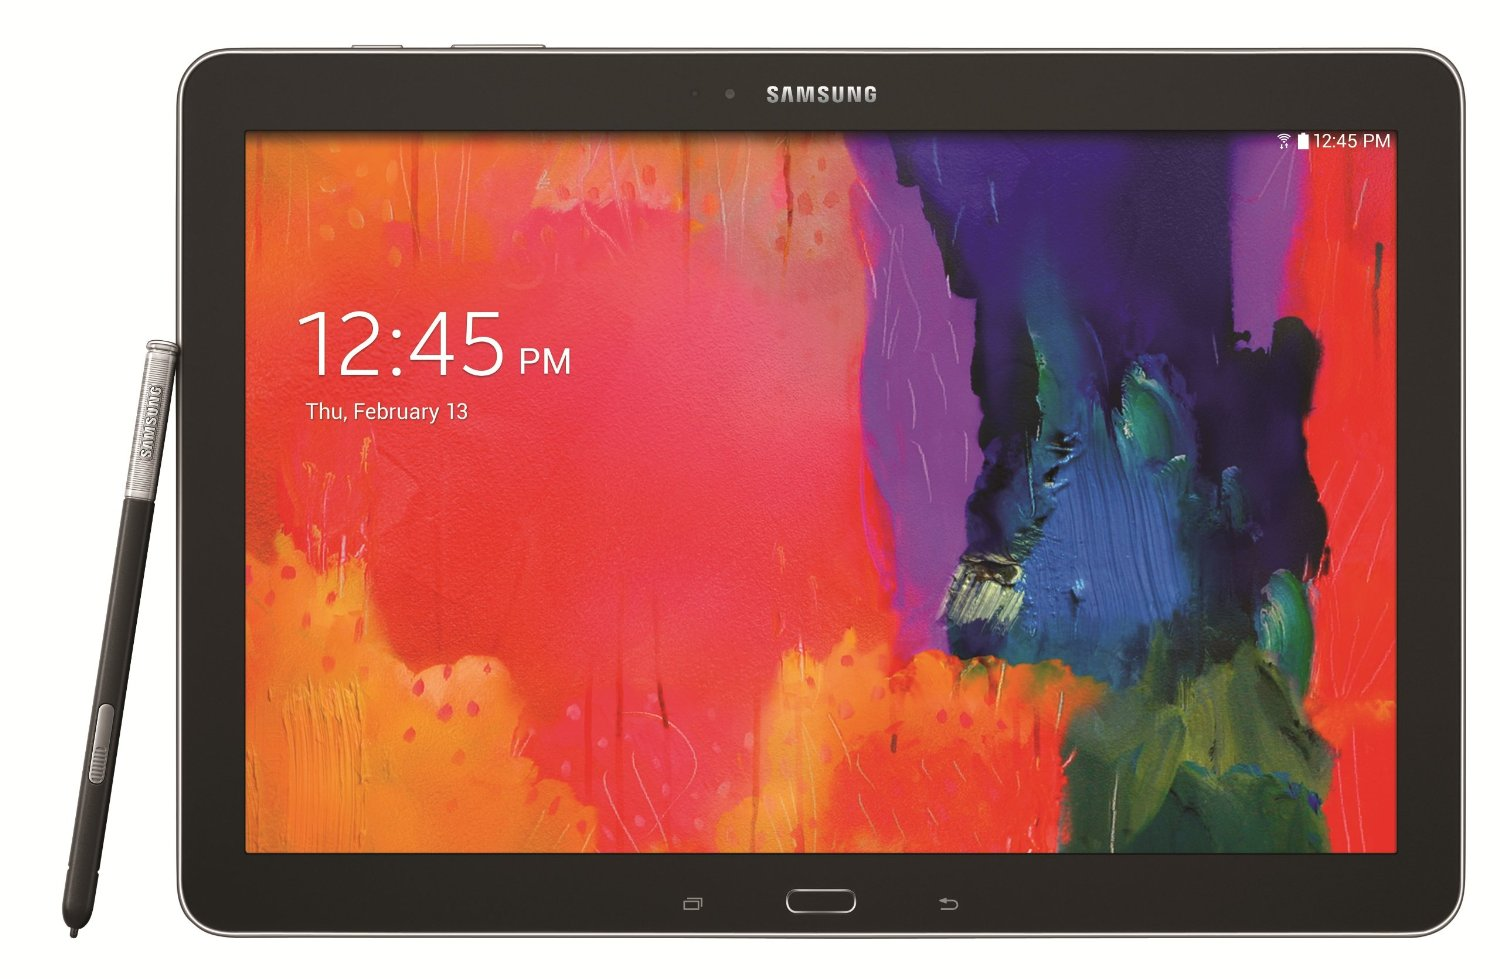 Samsung Note Pro 12.2-inch tablet